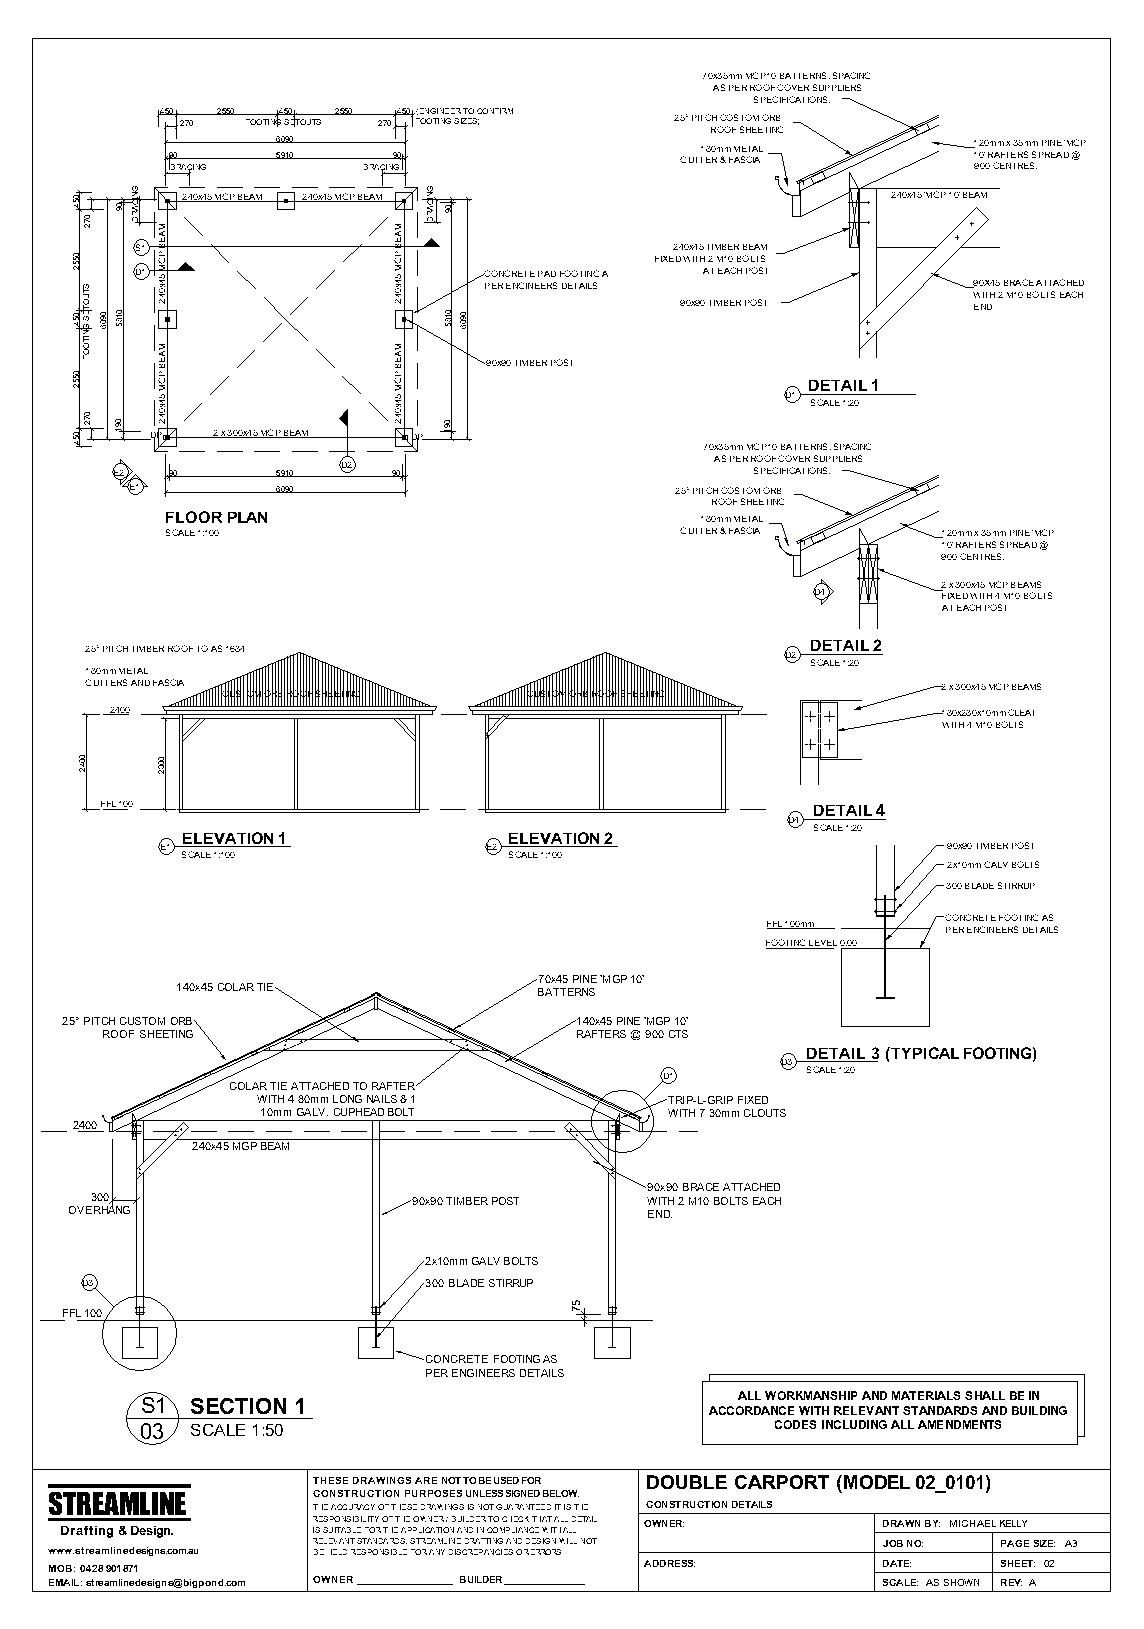 carport plans  download